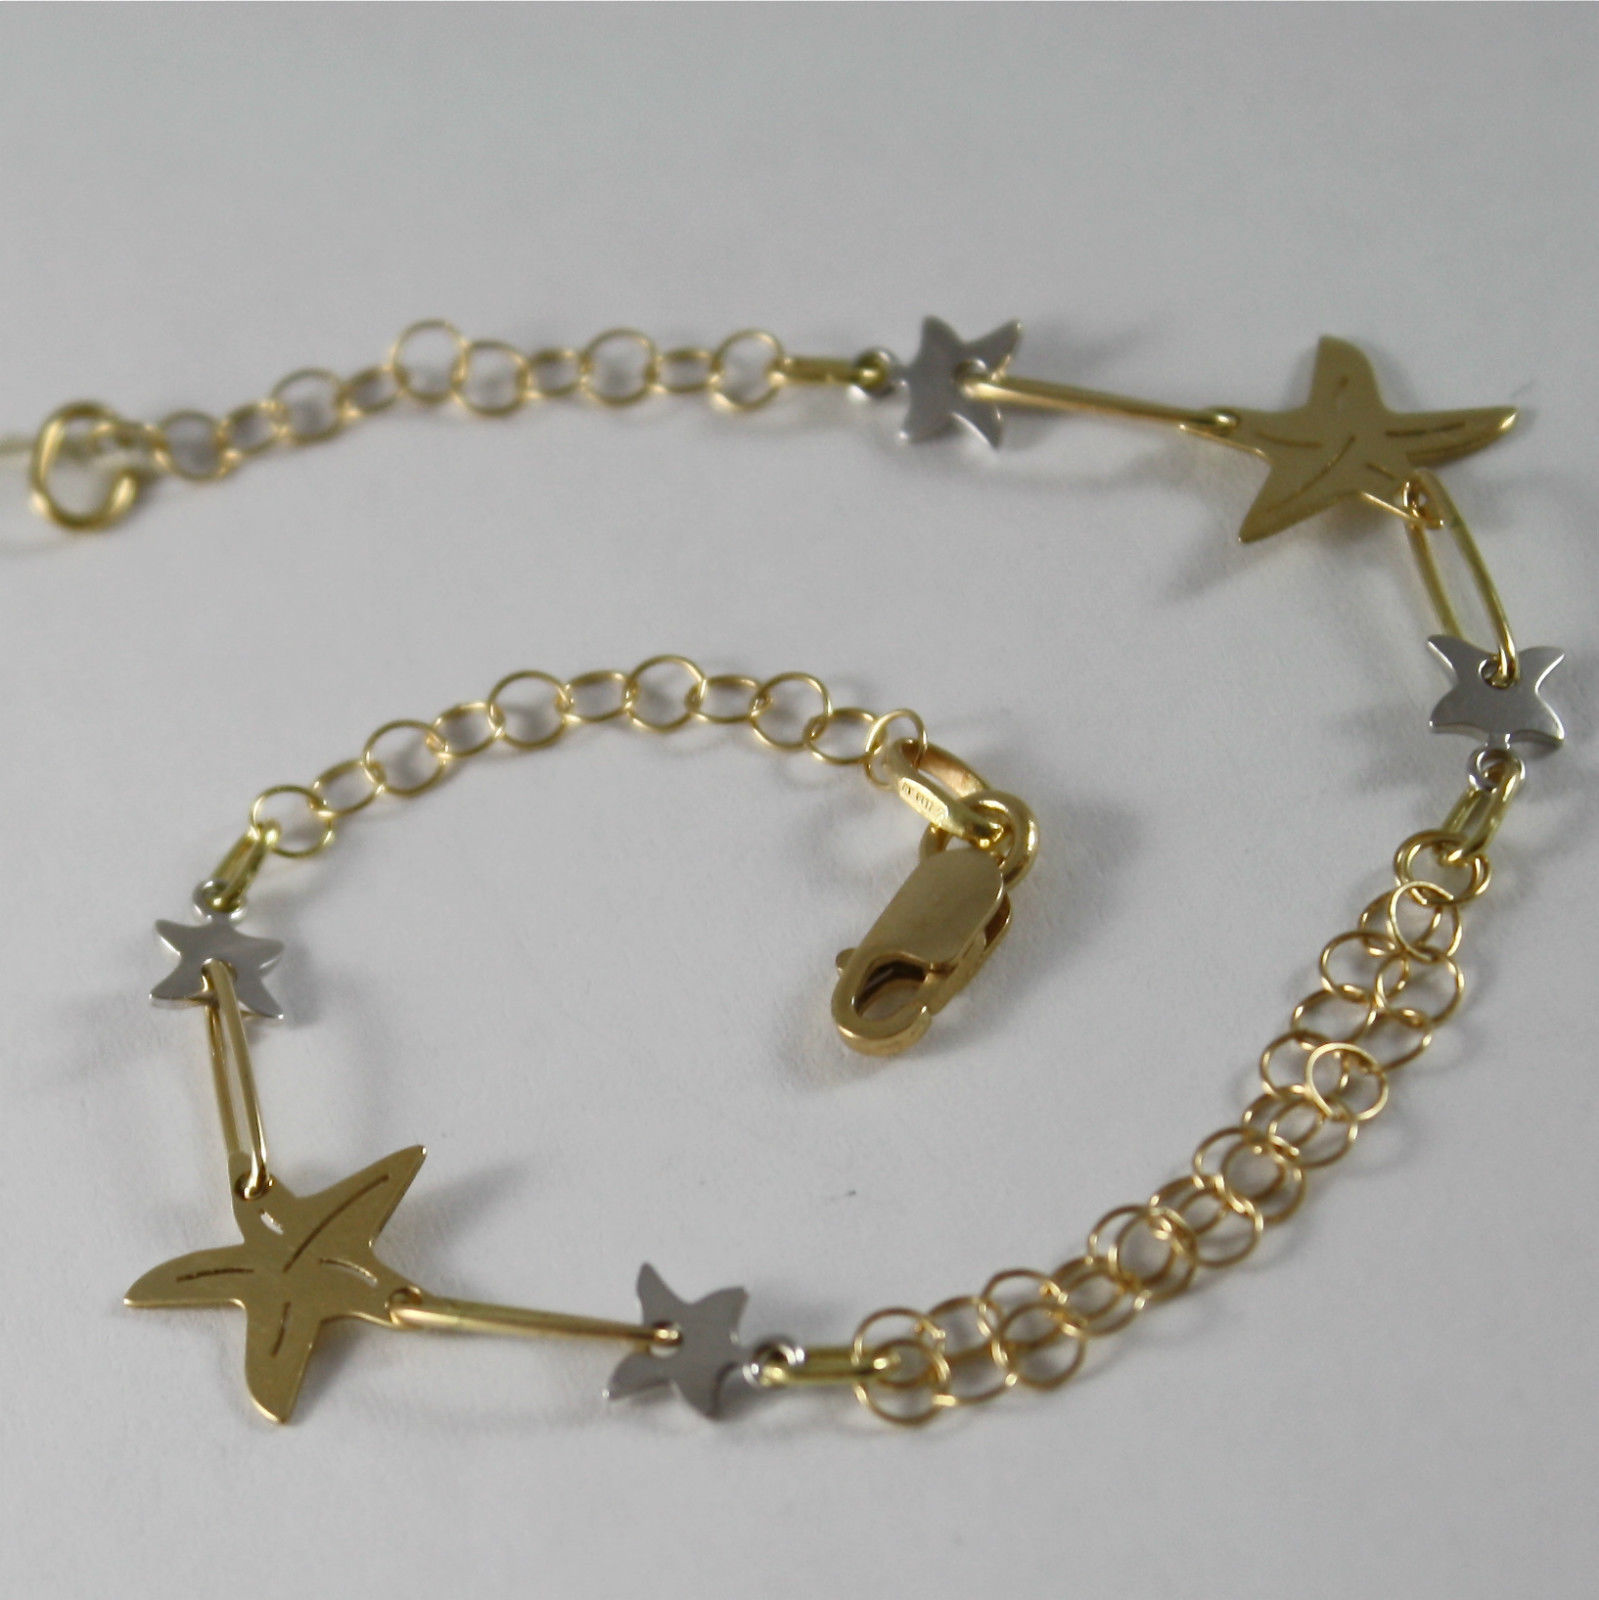 SOLID 18K YELLOW AND WHITE GOLD BRACELET, WITH STARS, STAR, MADE IN ITALY